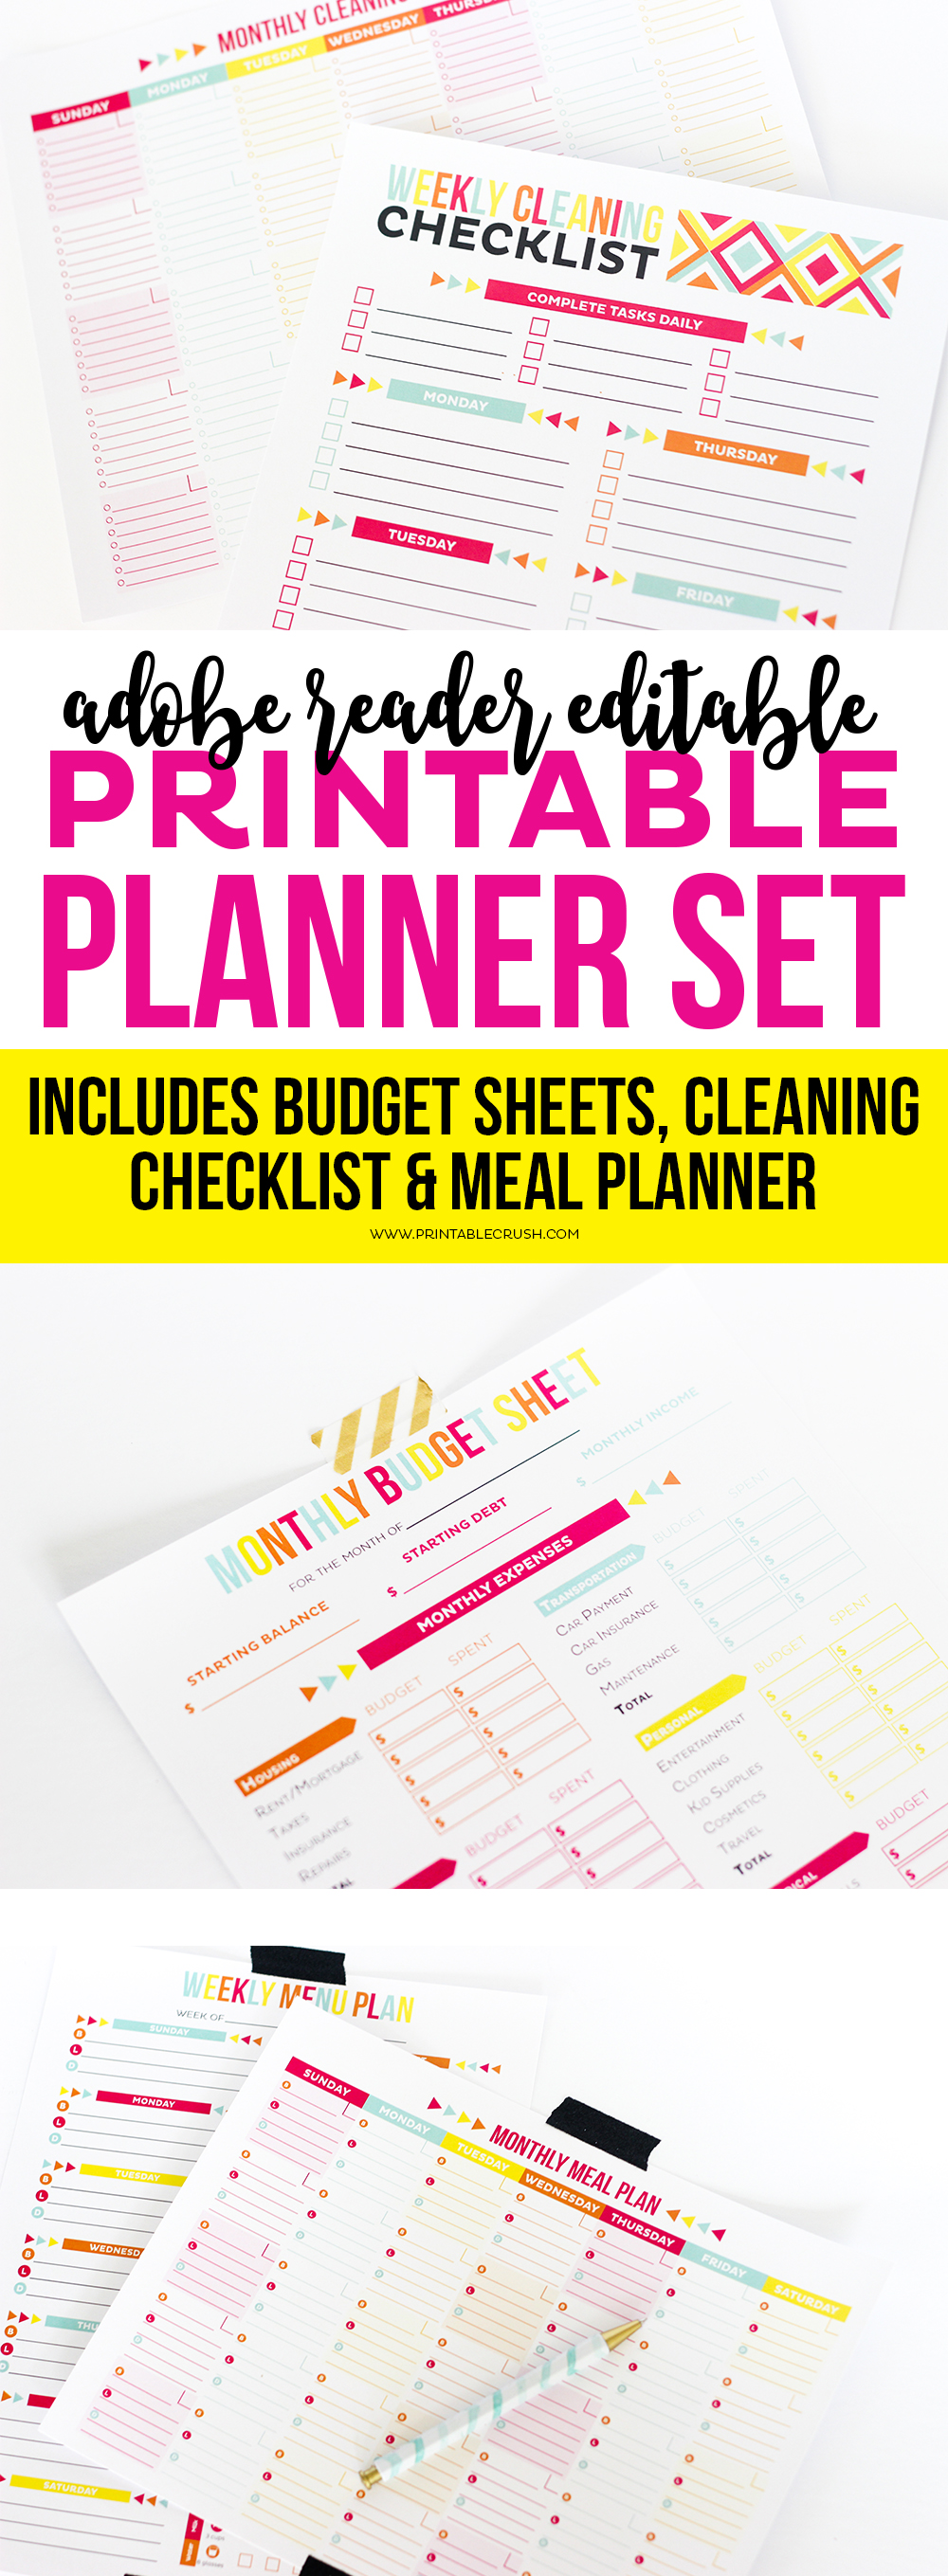 Get these Adobe Reader Editable Planners to keep you more organized! Includes meal planner, budget sheets and a cleaning checklist!